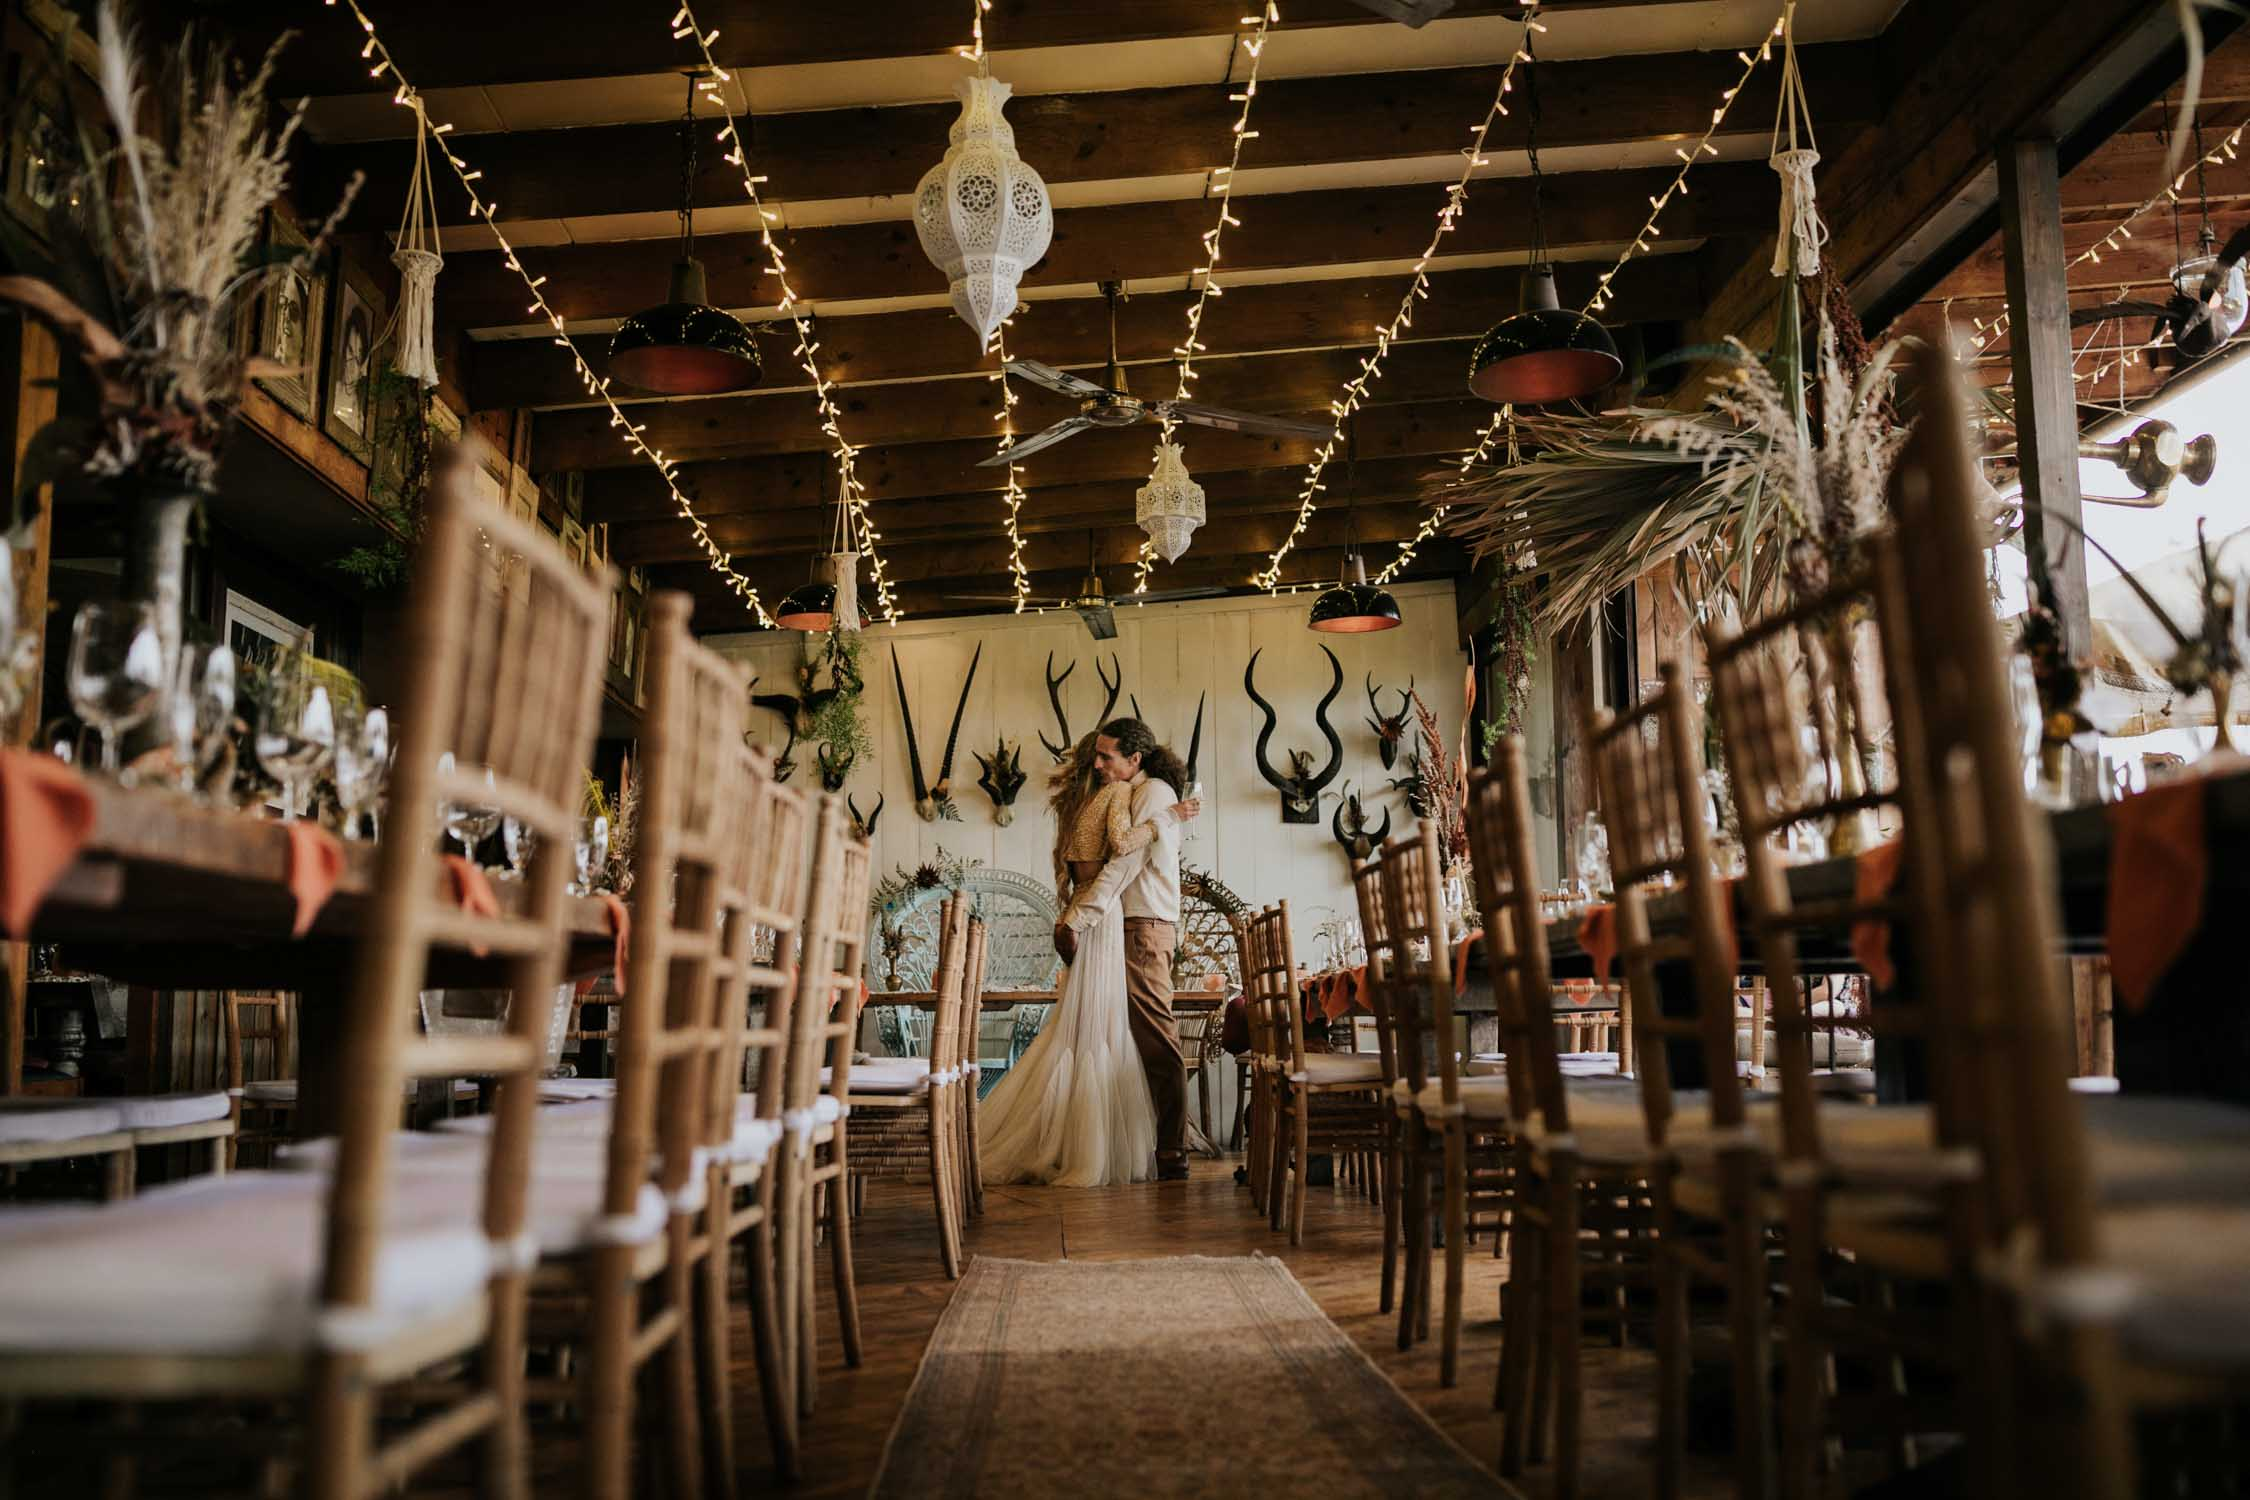 Boho inspired wedding decor of rustic wooden chairs, woven macrame table runners, feather and dried flower arrangements in brass and copper pots, skull table numbers, gemstones and Bali Wicker Peacock Chairs at destination wedding in Plett South Africa